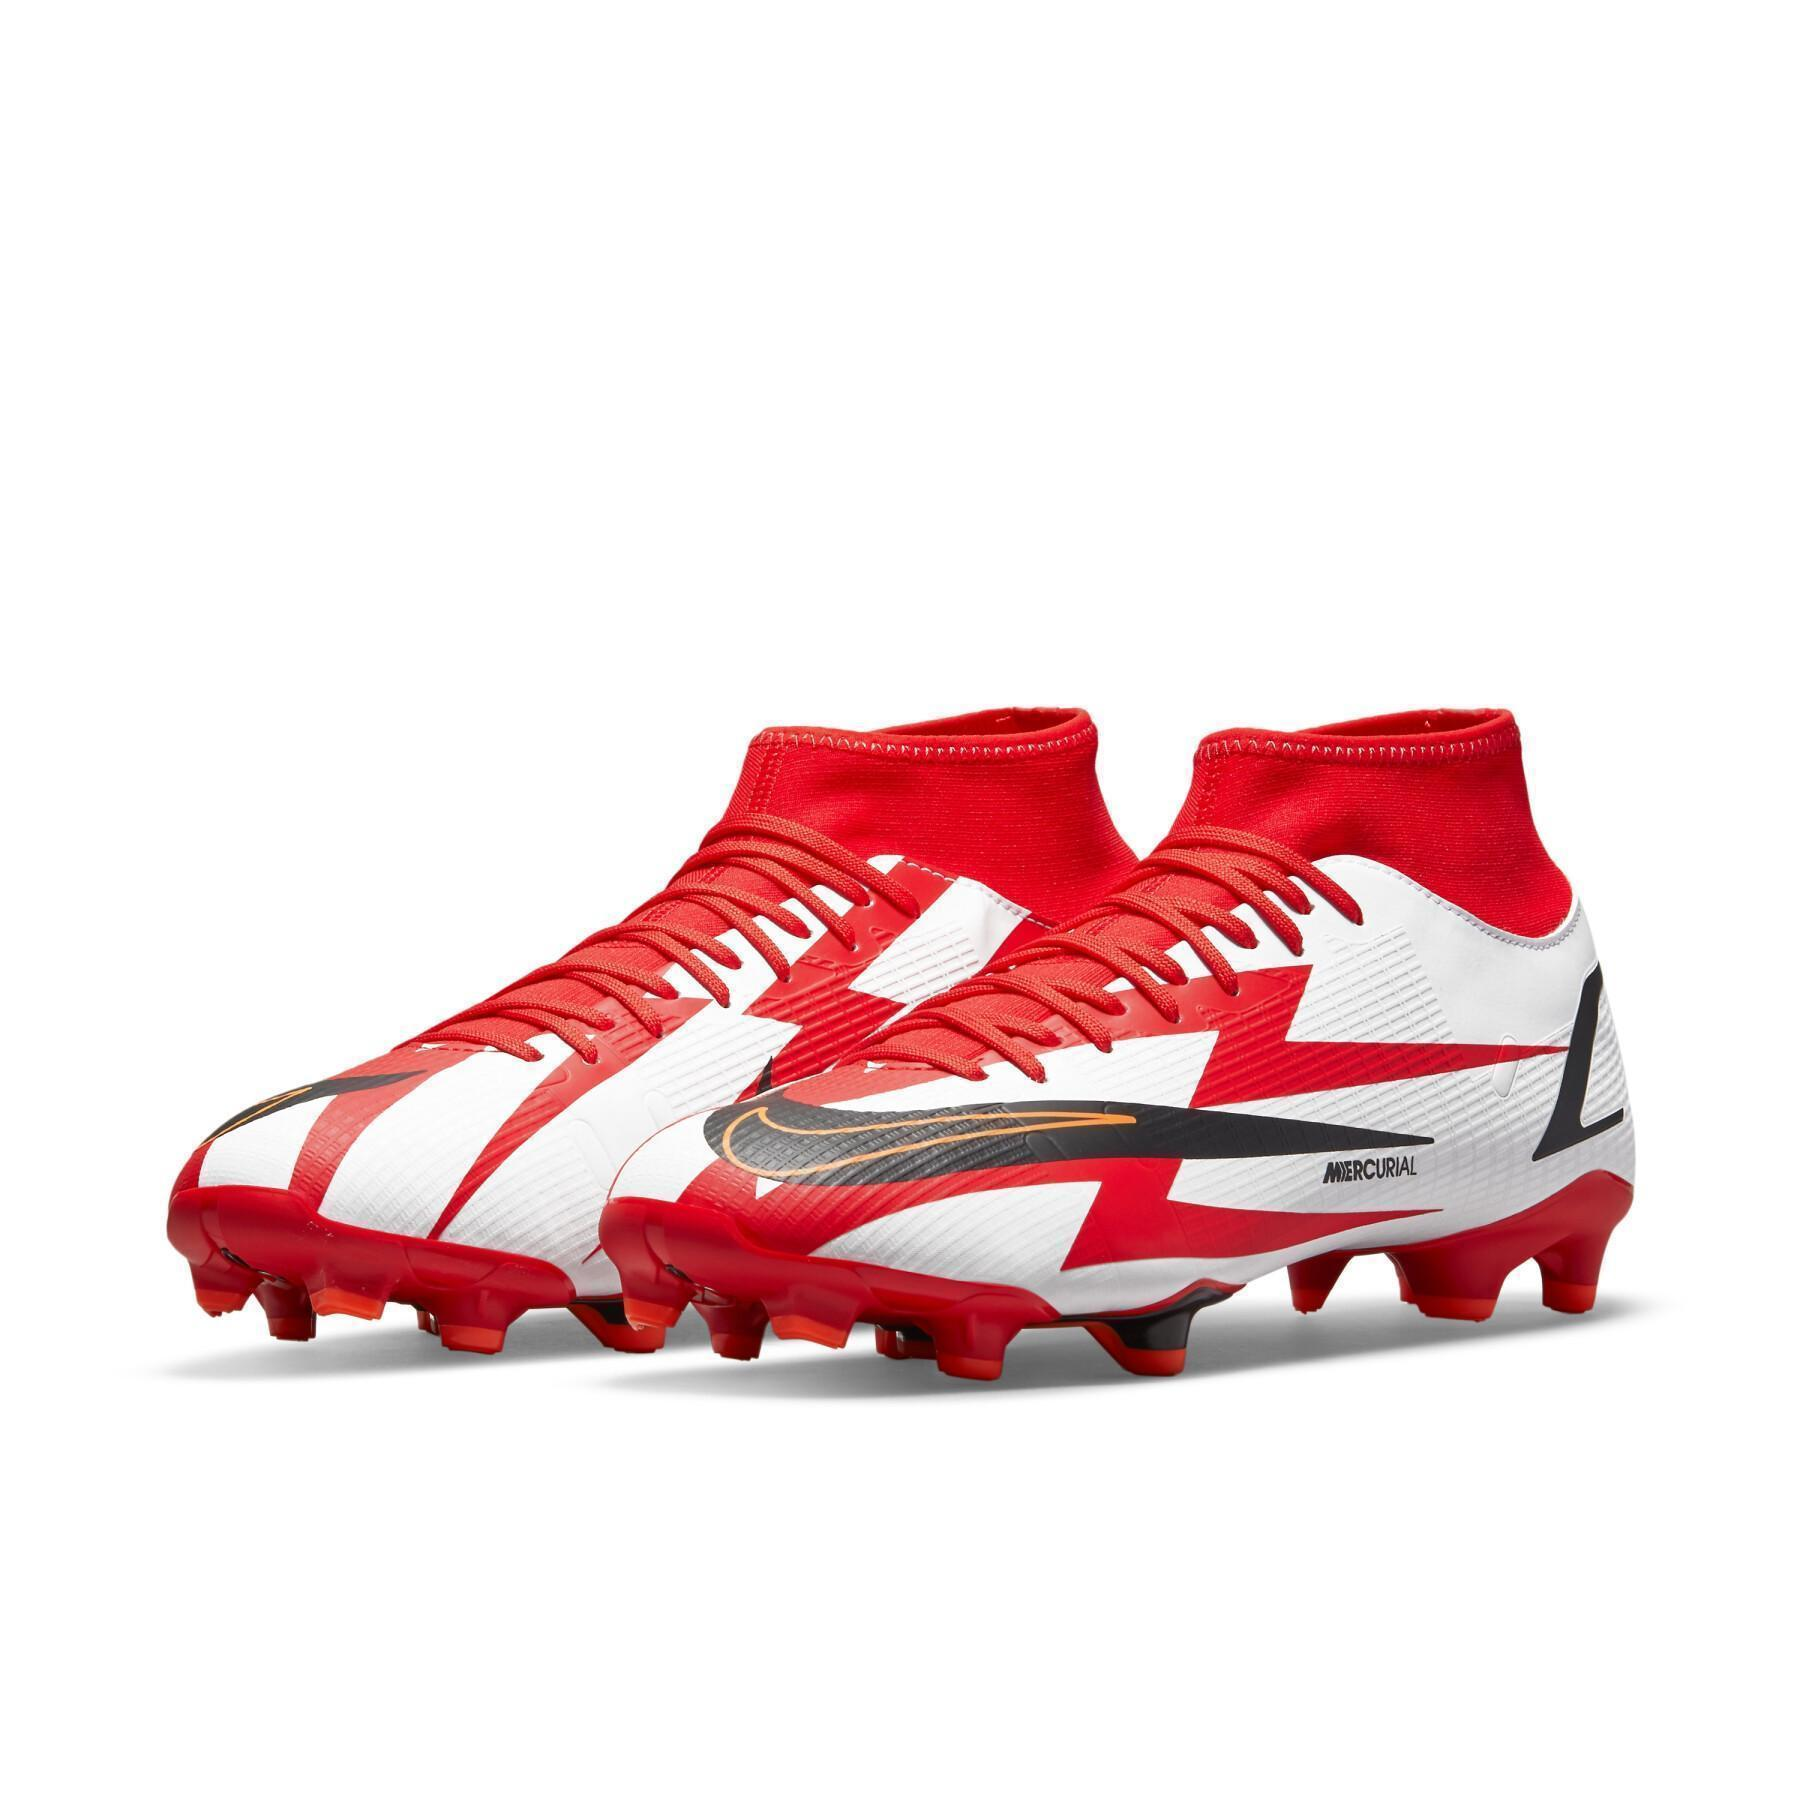 Shoes Nike Mercurial Superfly 8 Academy CR7 MG